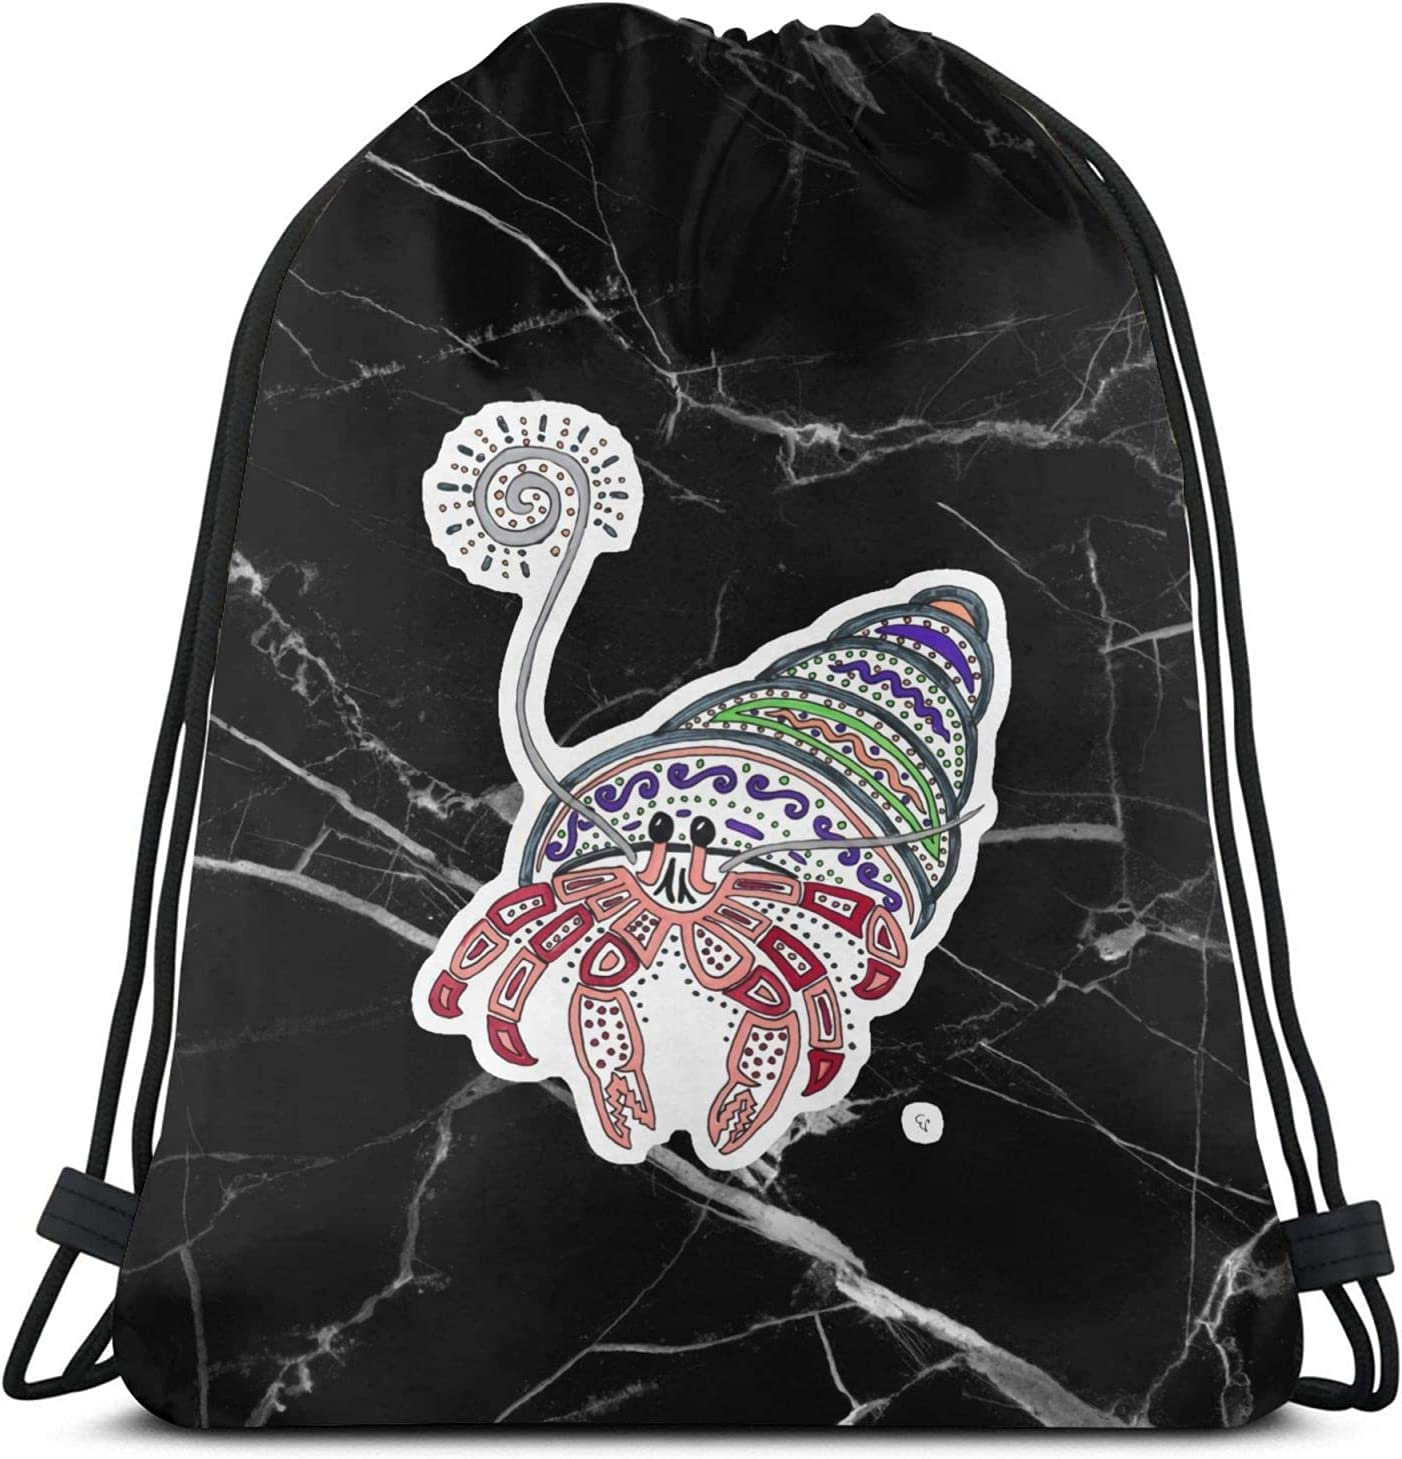 The Price reduction Hermit Limited Special Price Crab Drawstring Backpack Gym Workout String Bag Bags